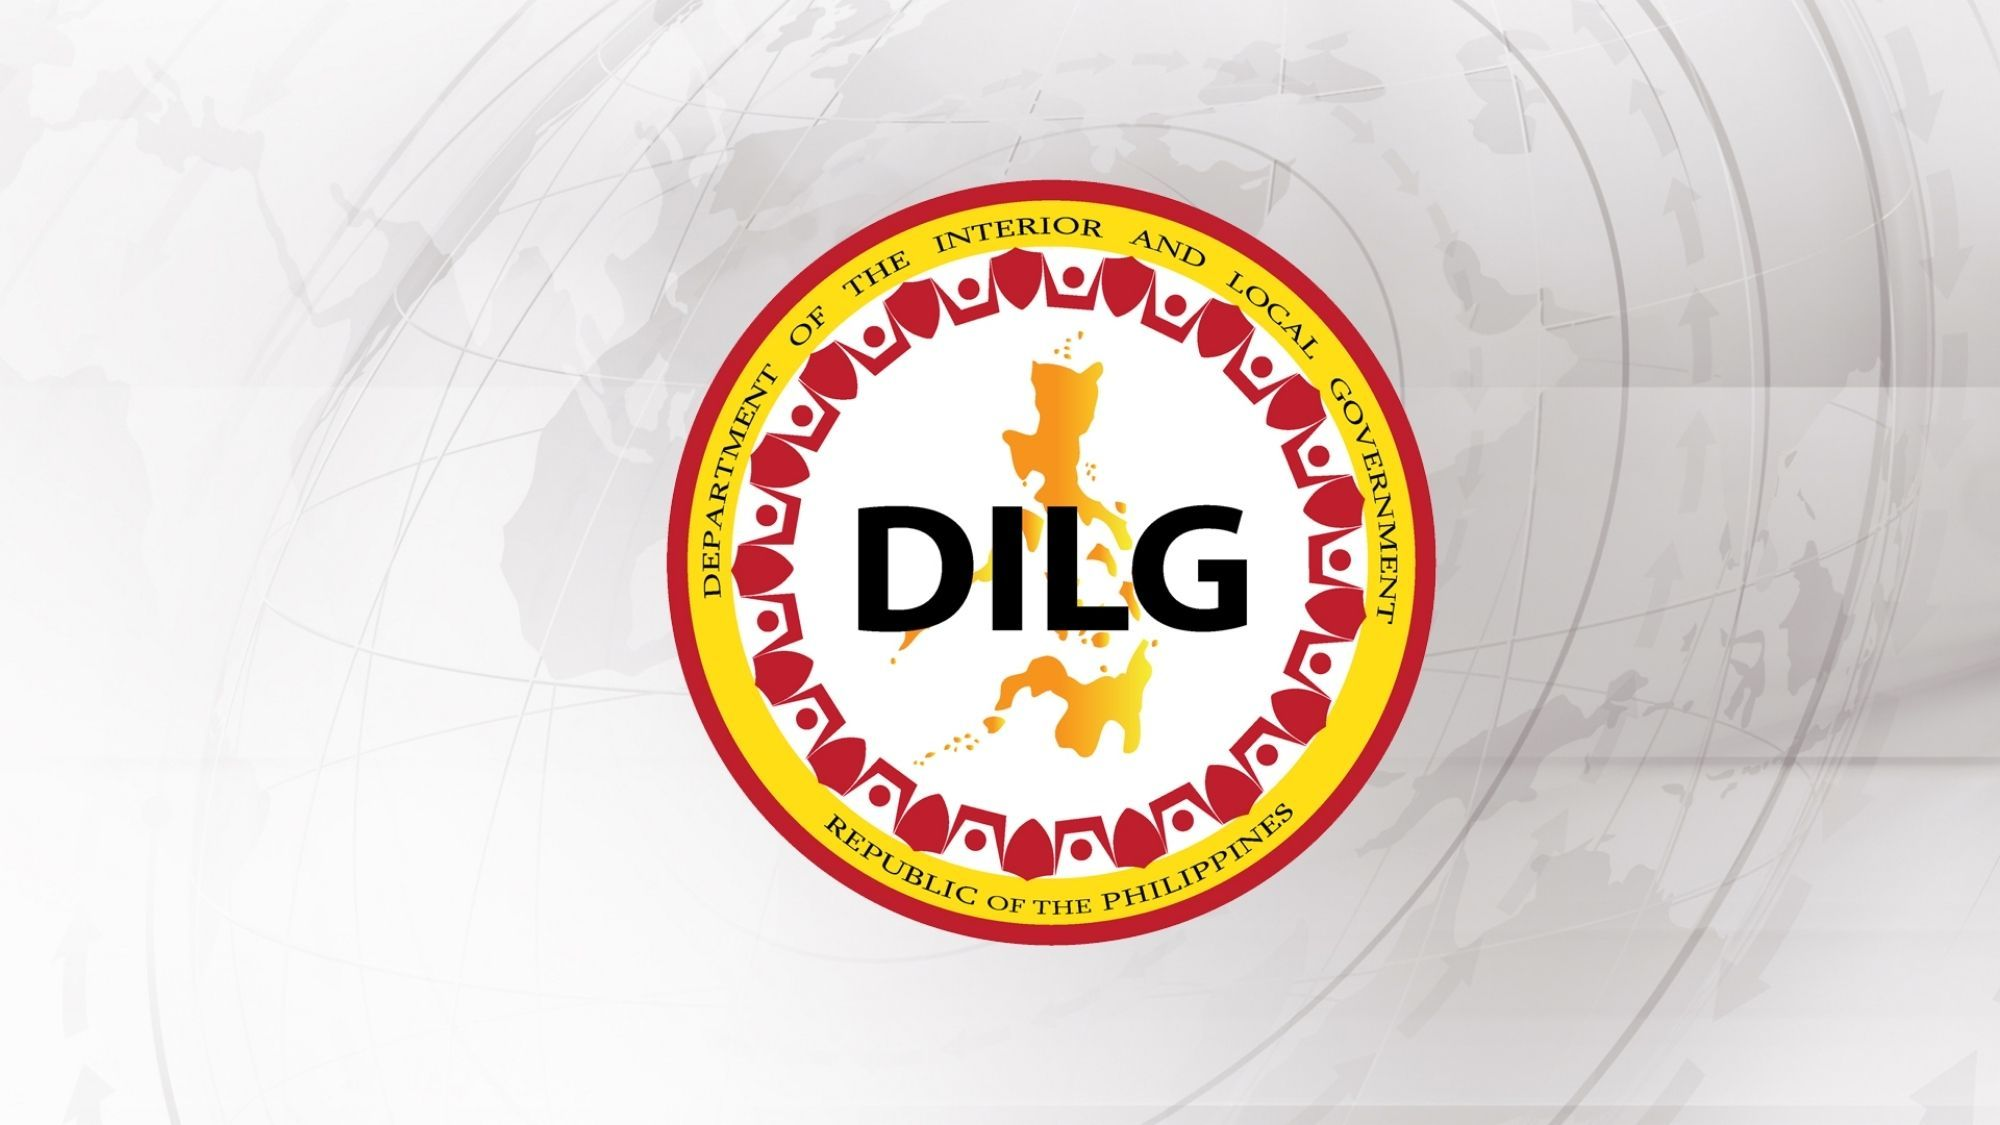 DILG says P12.3 B for development released to insurgency-free barangays